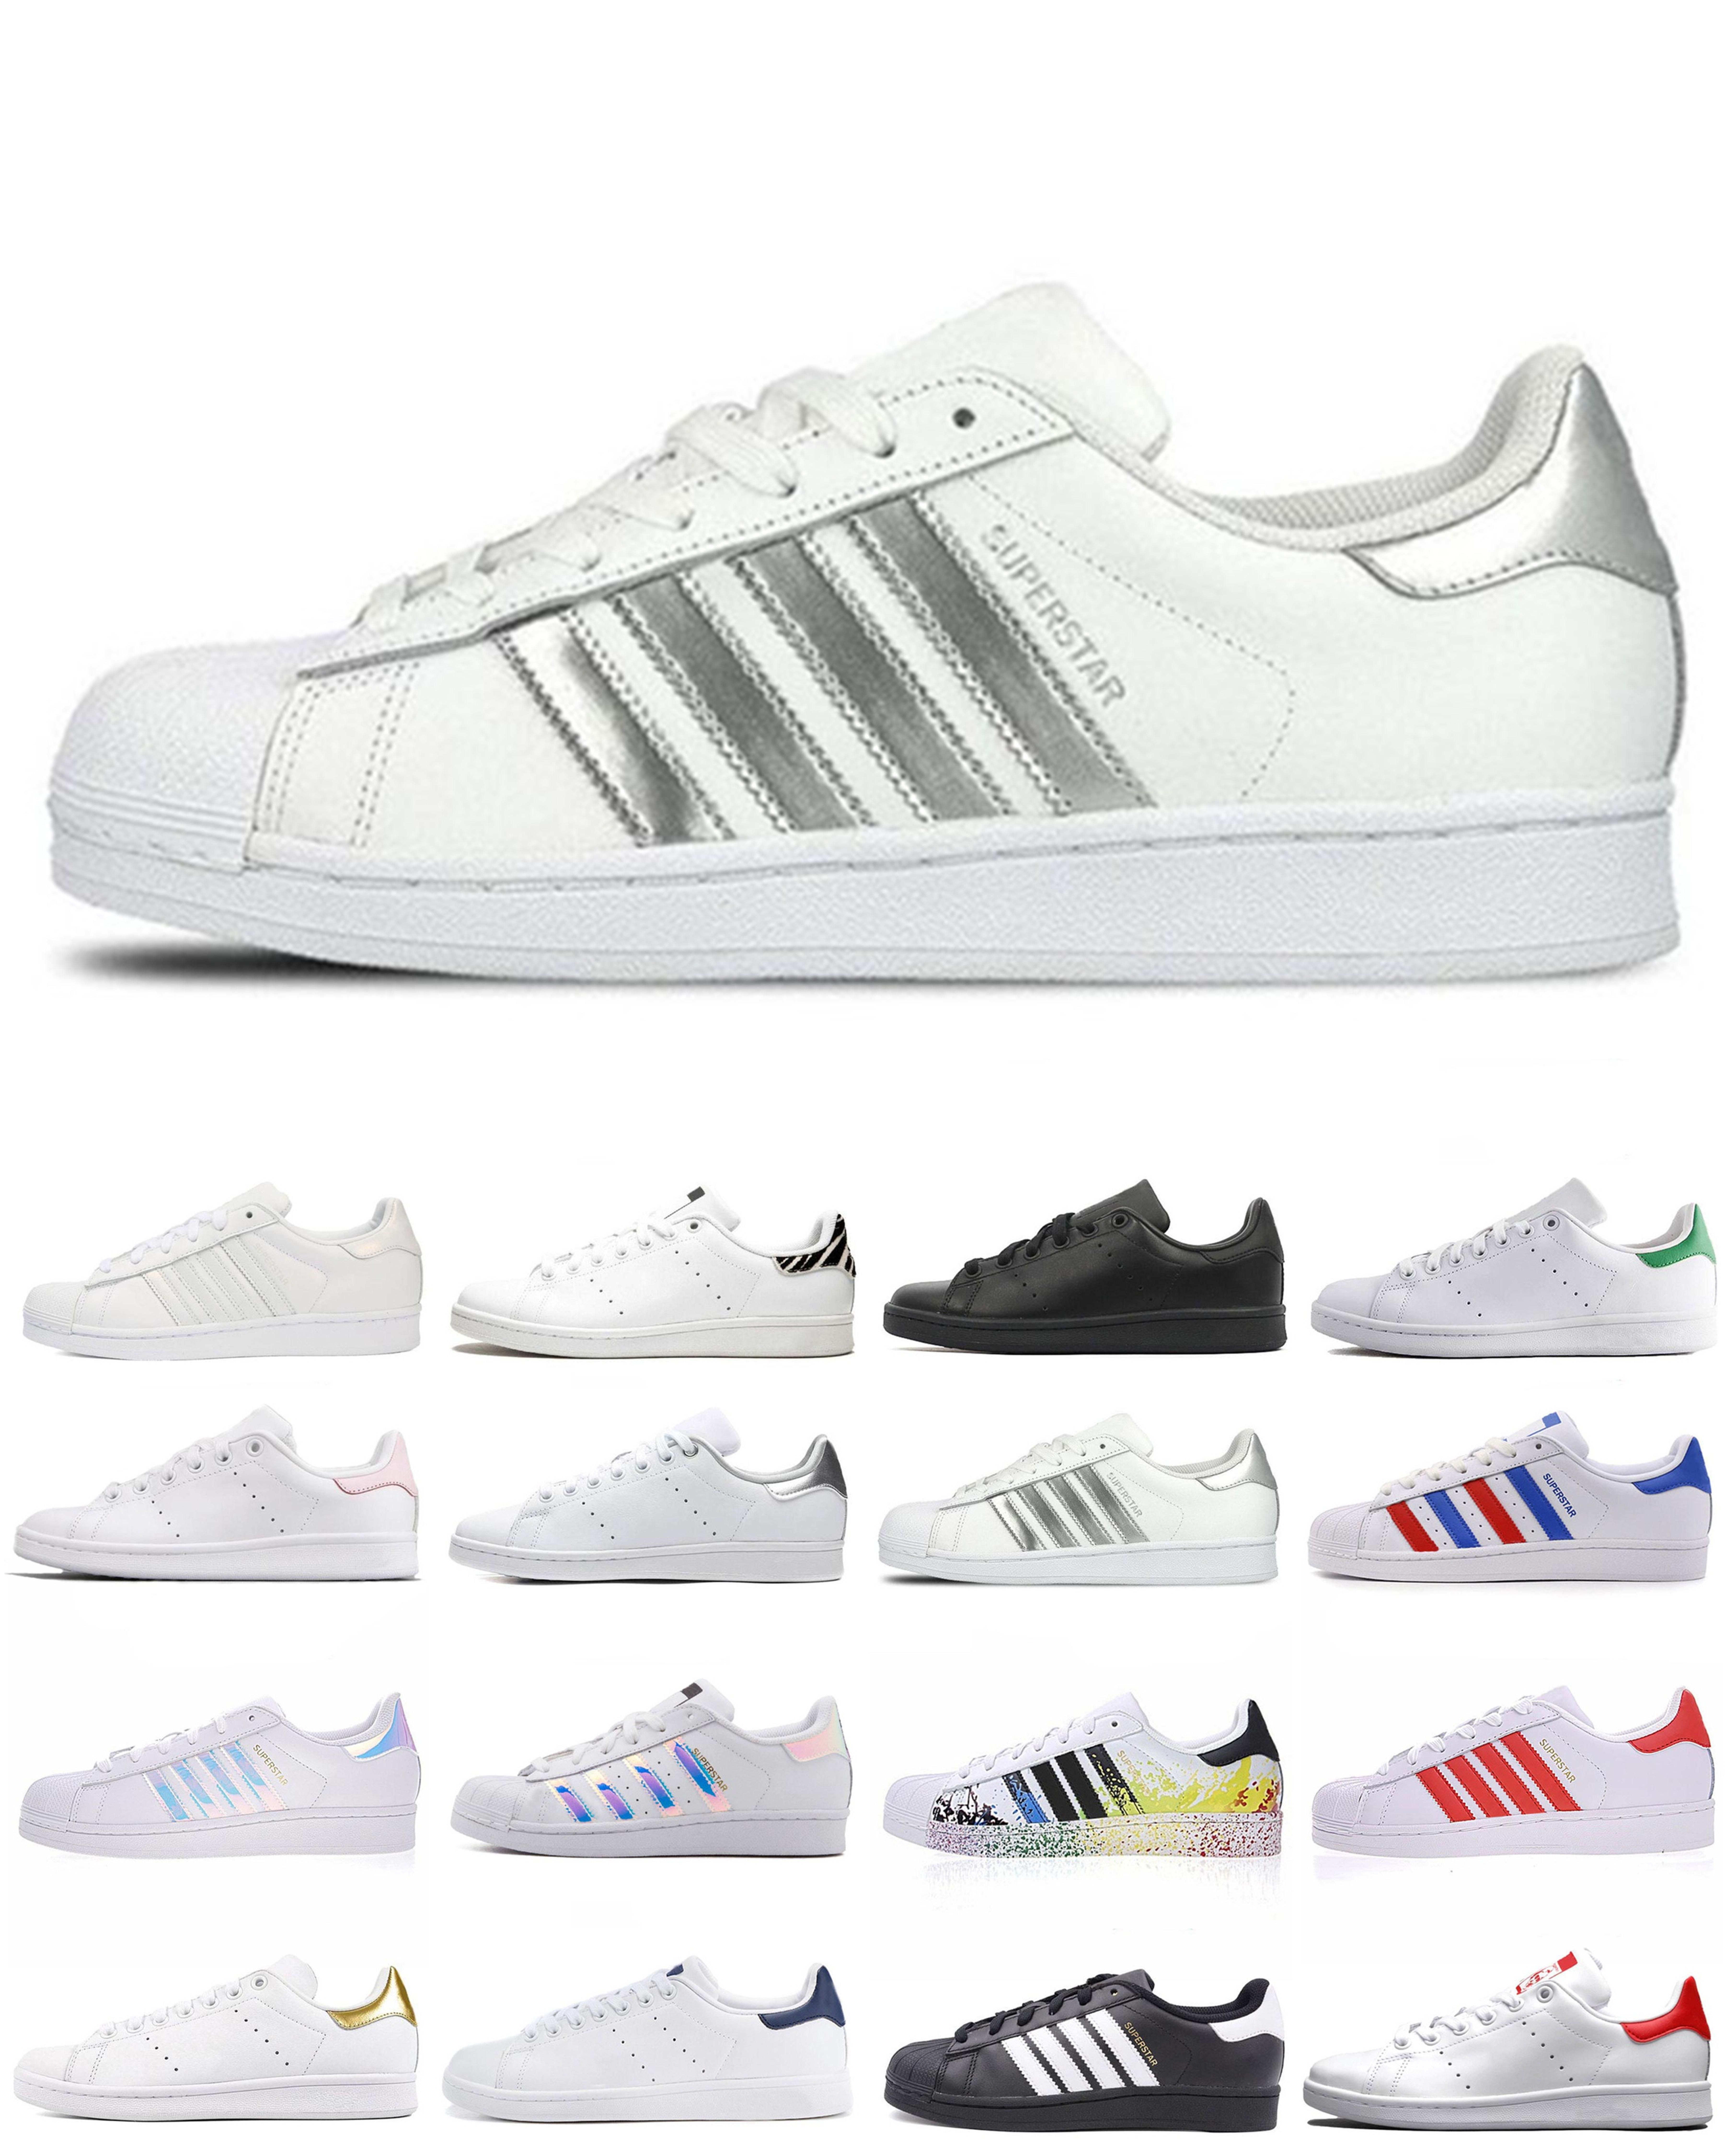 2020 Smith Casual Shoes Cheap Raf